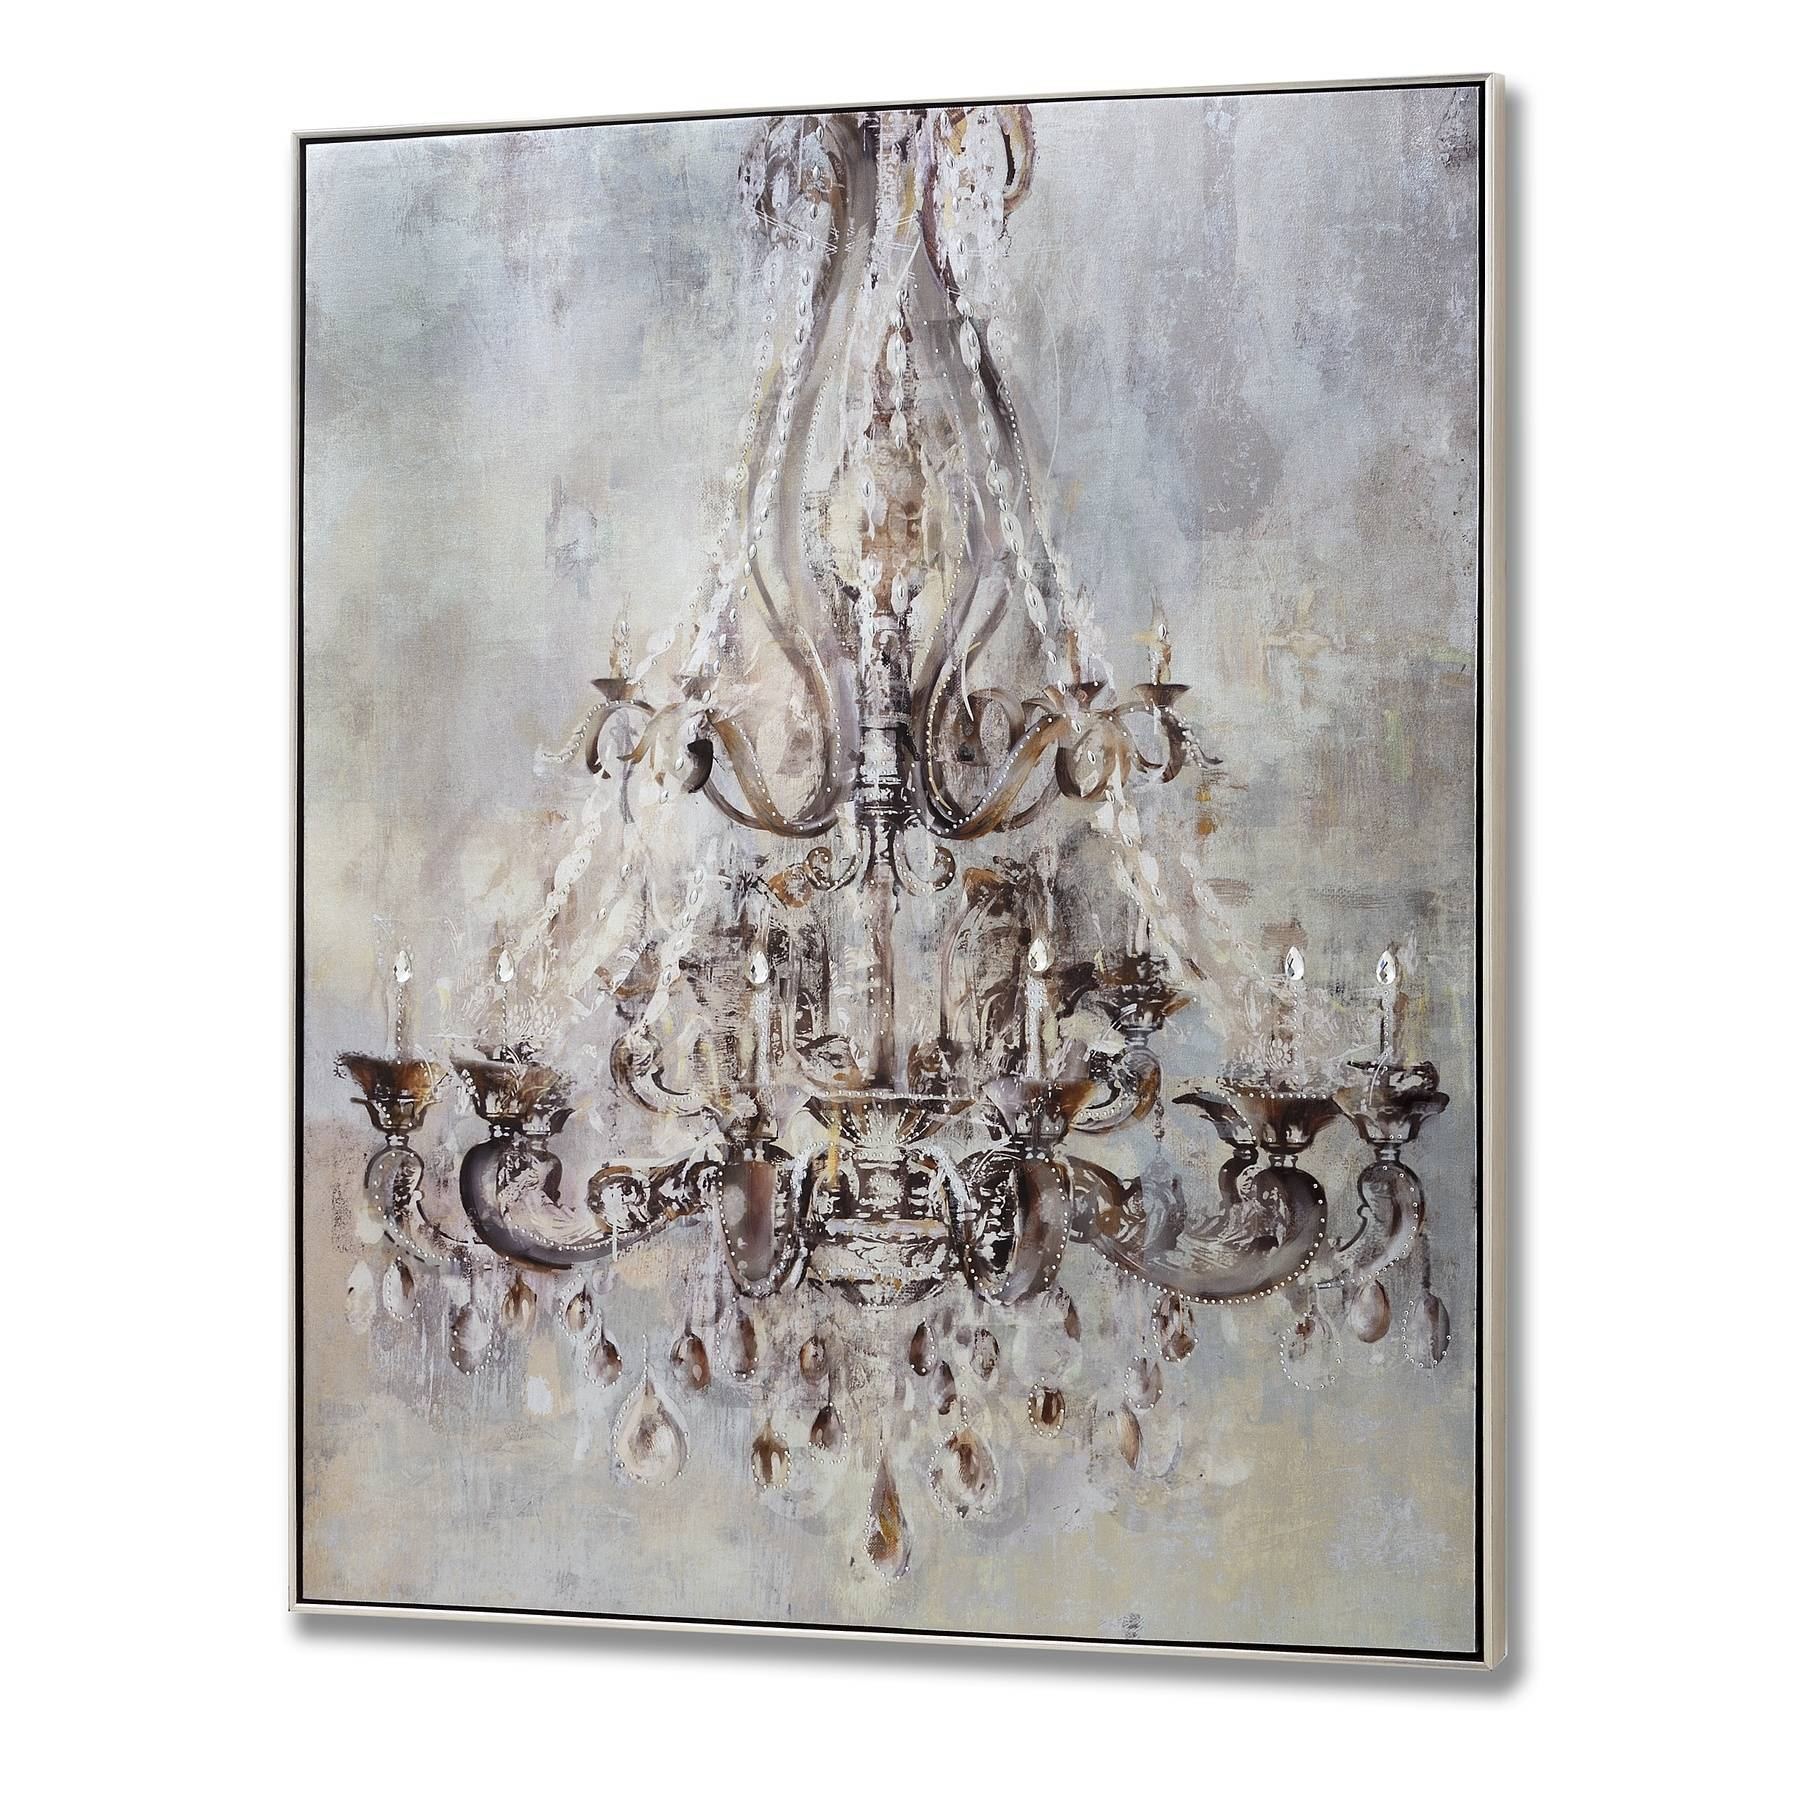 Framed Metalic Chandelier Wall Art With Metal Studs From Hill Pertaining To Most Recently Released Metal Framed Wall Art (View 9 of 20)